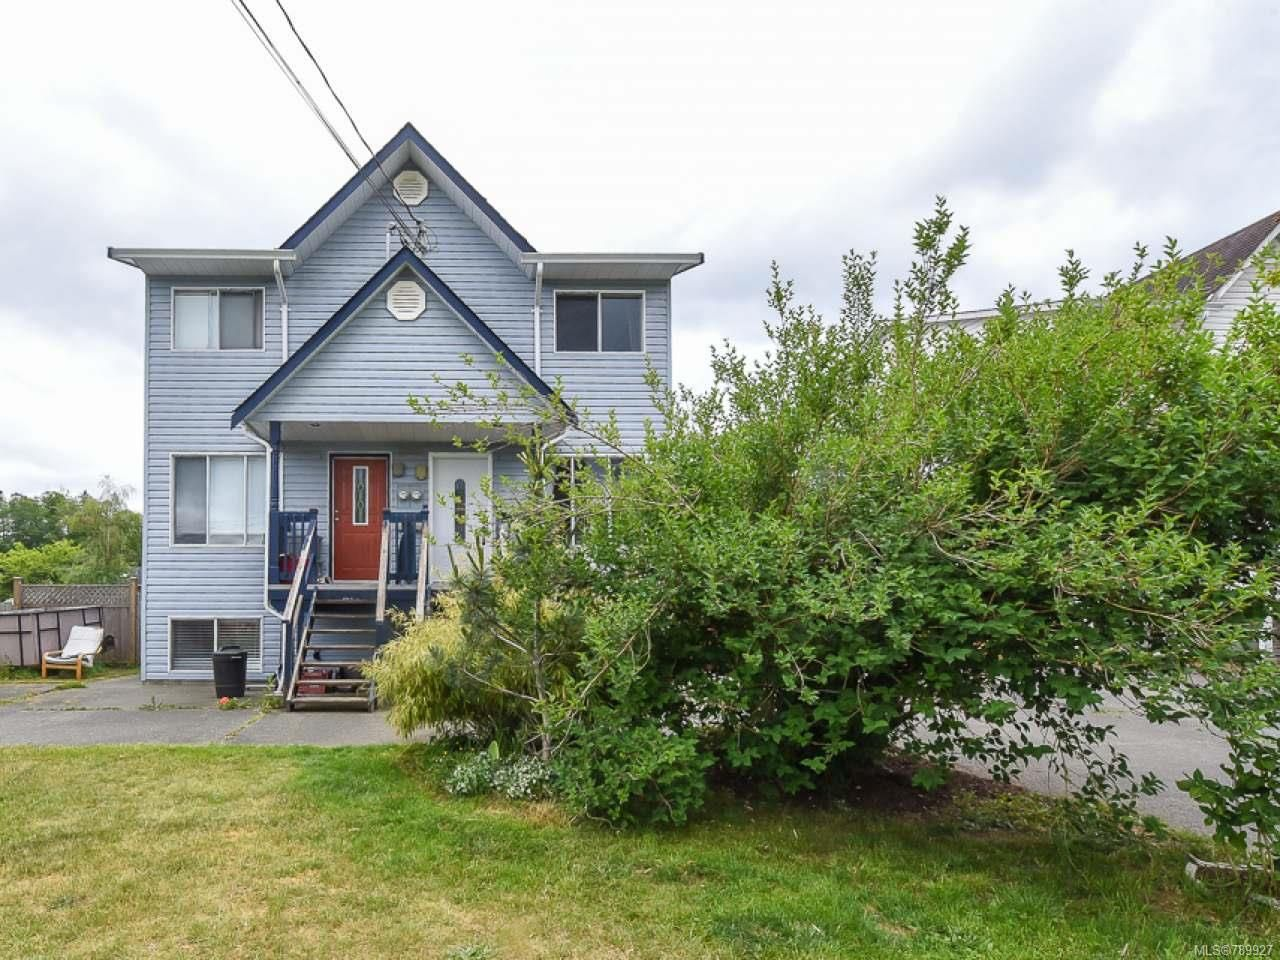 Main Photo: B 222 MITCHELL PLACE in COURTENAY: CV Courtenay City Half Duplex for sale (Comox Valley)  : MLS®# 789927